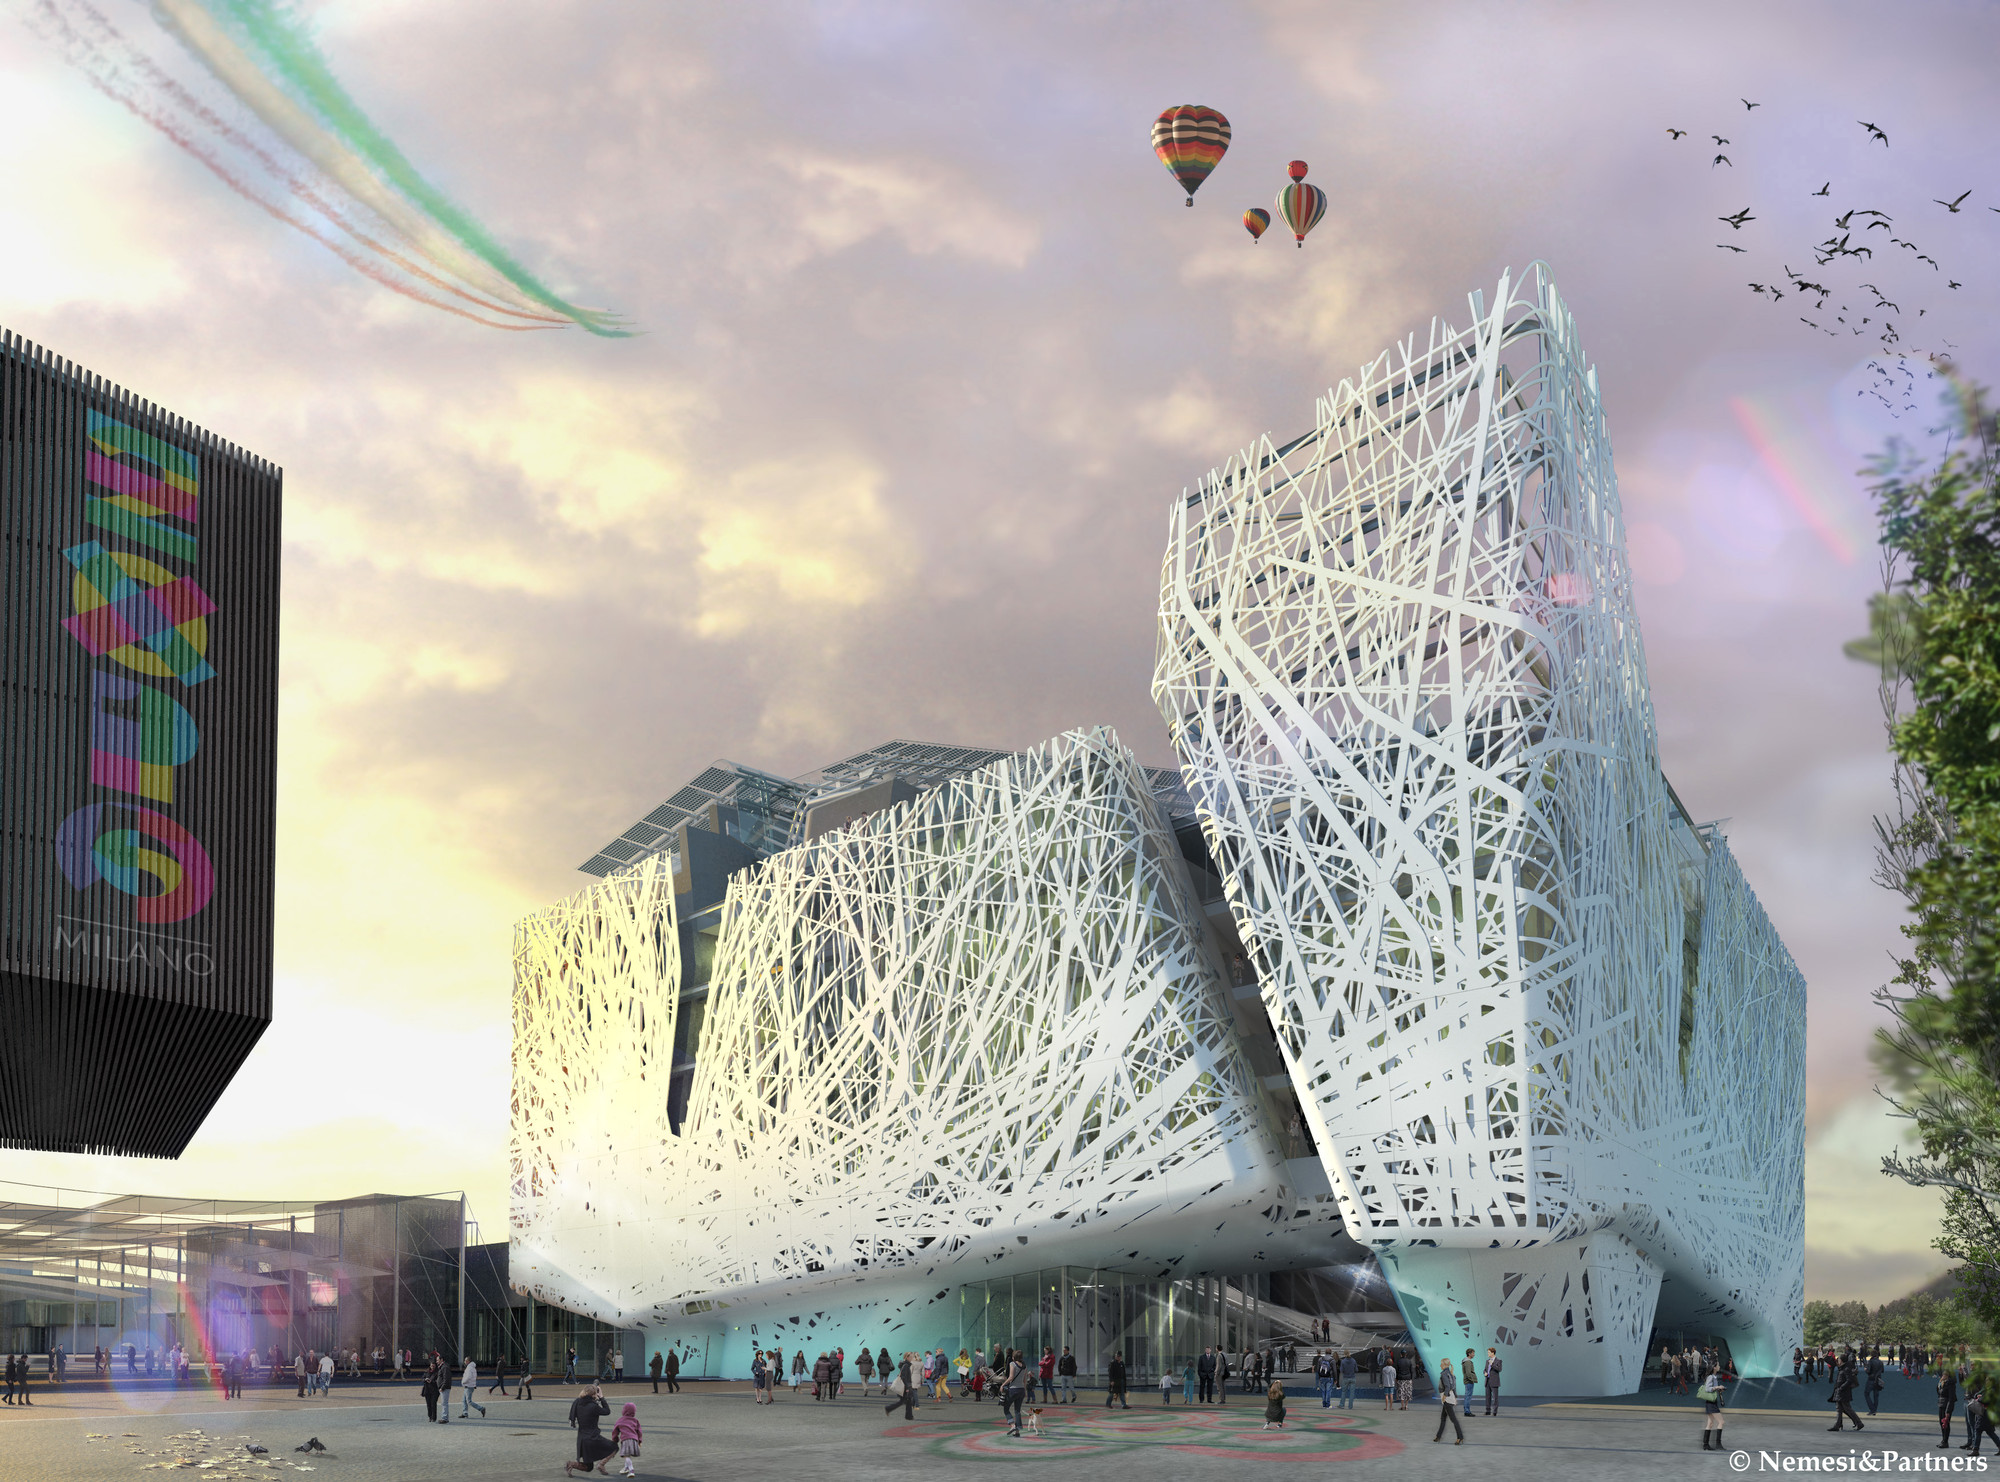 Milan Expo 2015: Nemesi & Partners Reveal Smog-Eating Pavilion for Italy, Main Entrance. Image © Nemesi & Partners